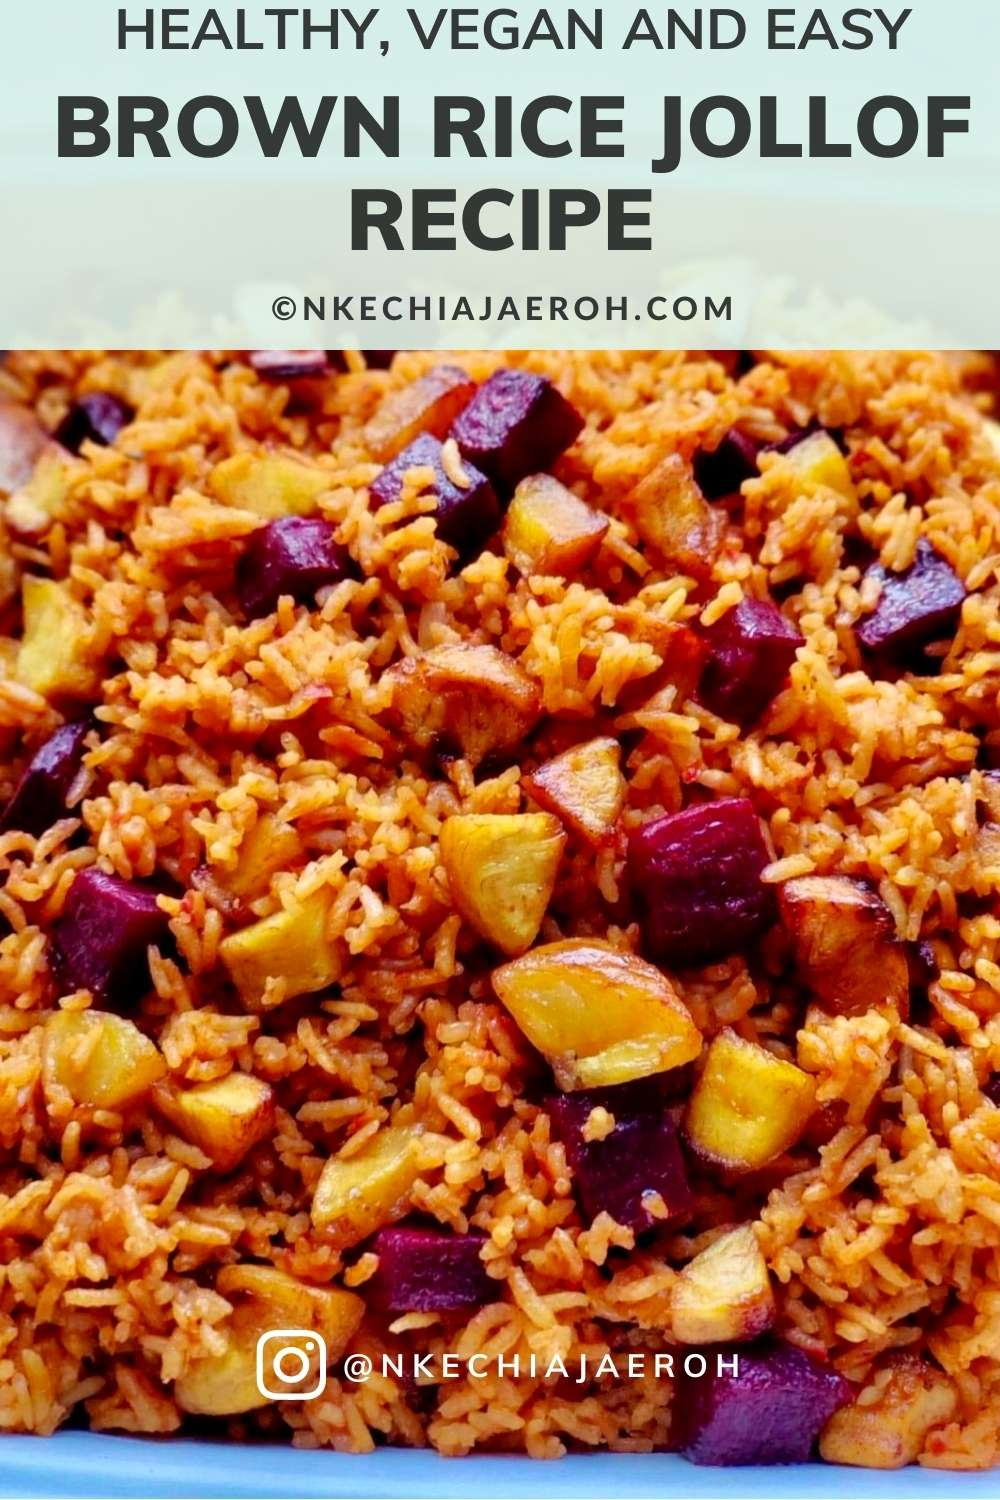 Learn how to cook this drool-worthy crowd-pleaser holiday healthy brown rice jollof side dish with beets and plantains that your entire family and guest will love and enjoy! Super easy to make, seasoned to perfection, tasty, and delicious. #Brownrice #rice #sidedish #Jollofrice